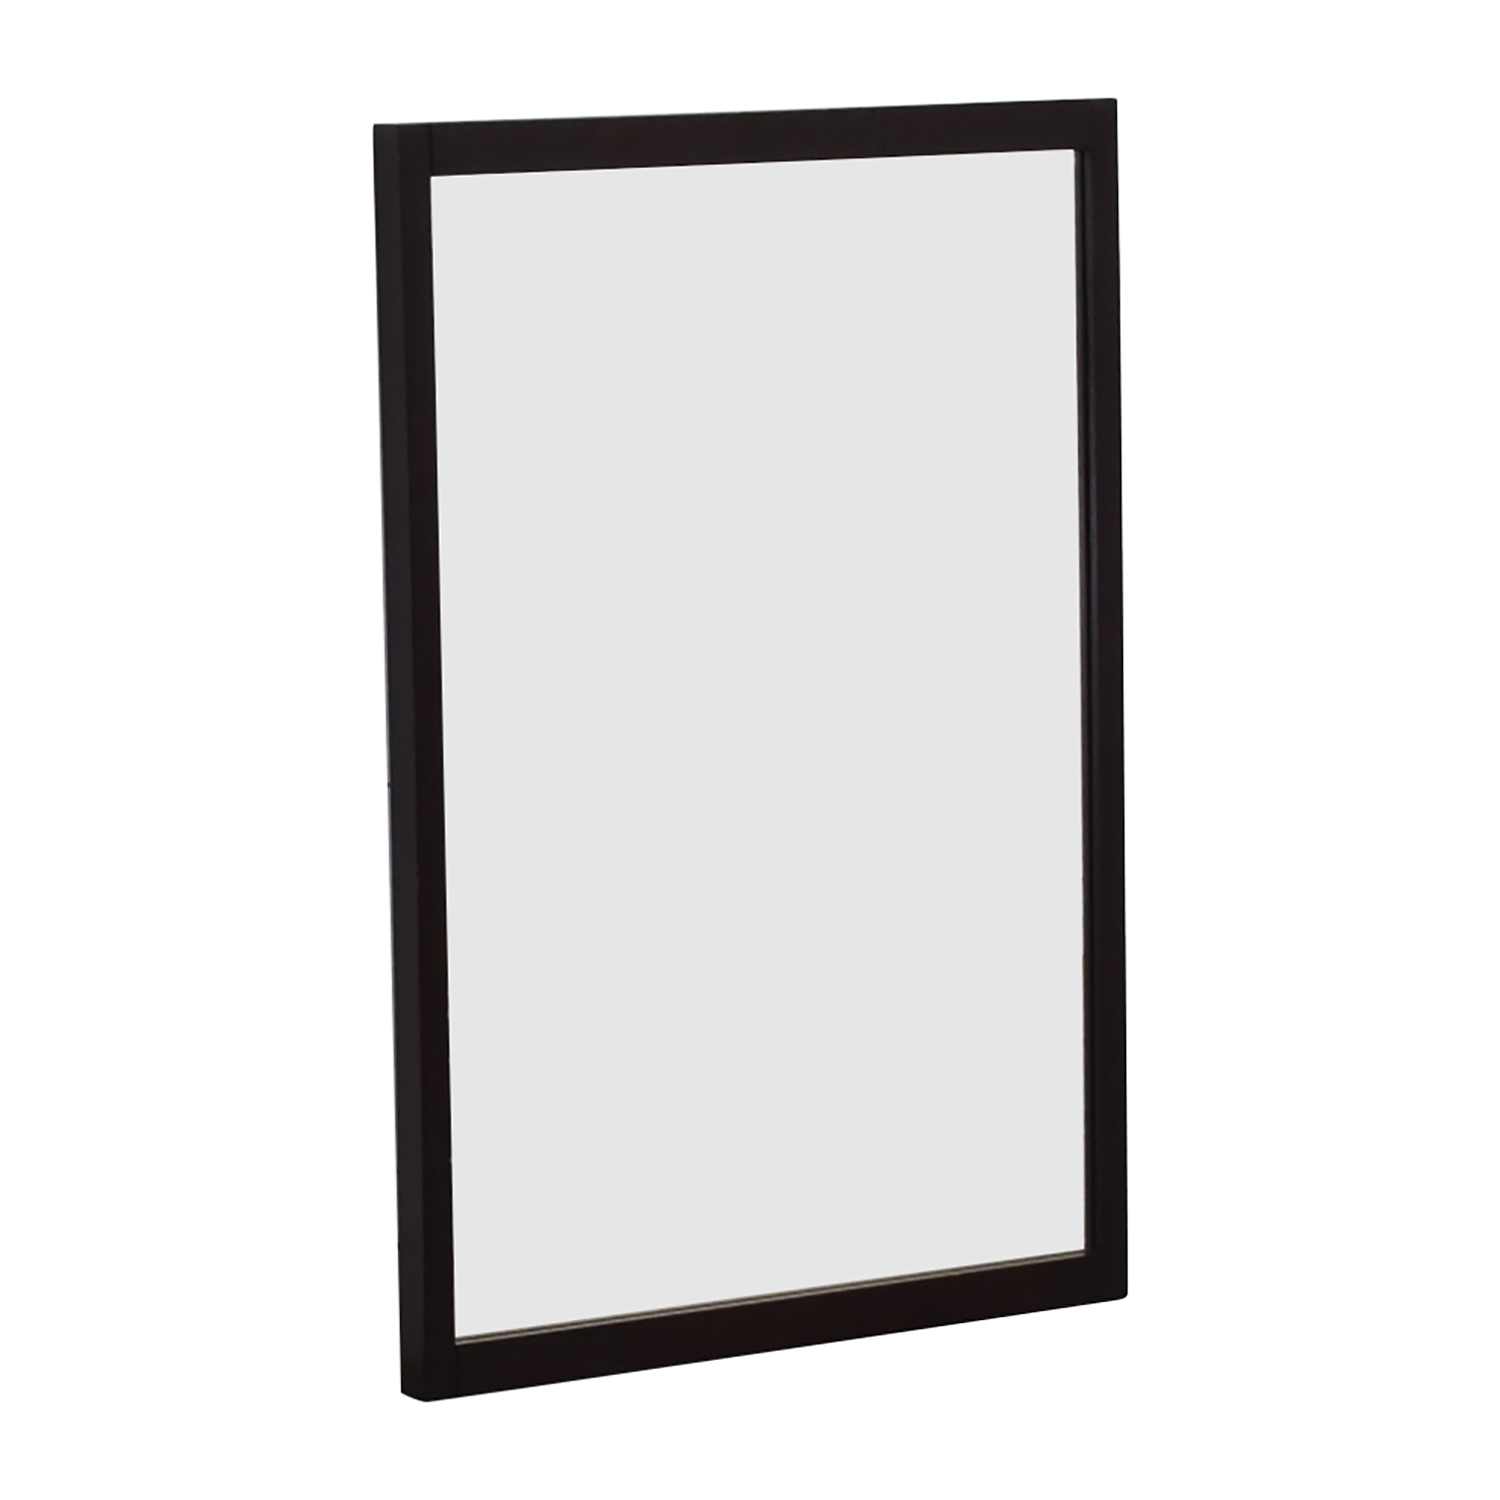 buy Crate & Barrel Framed Wall Mirror Crate & Barrel